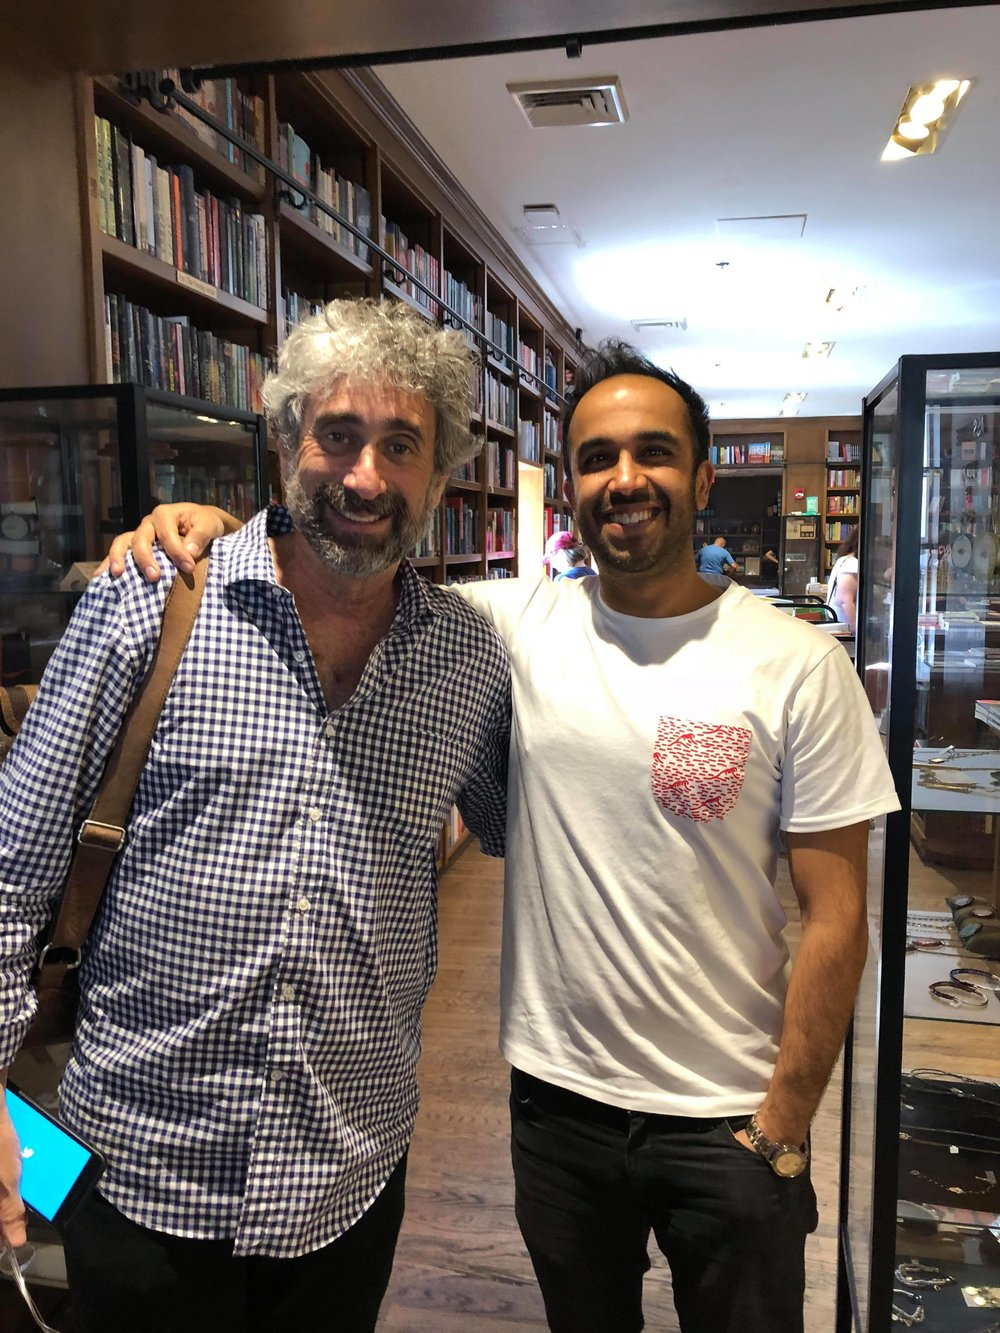 Me and Mitchell inside his bookstore